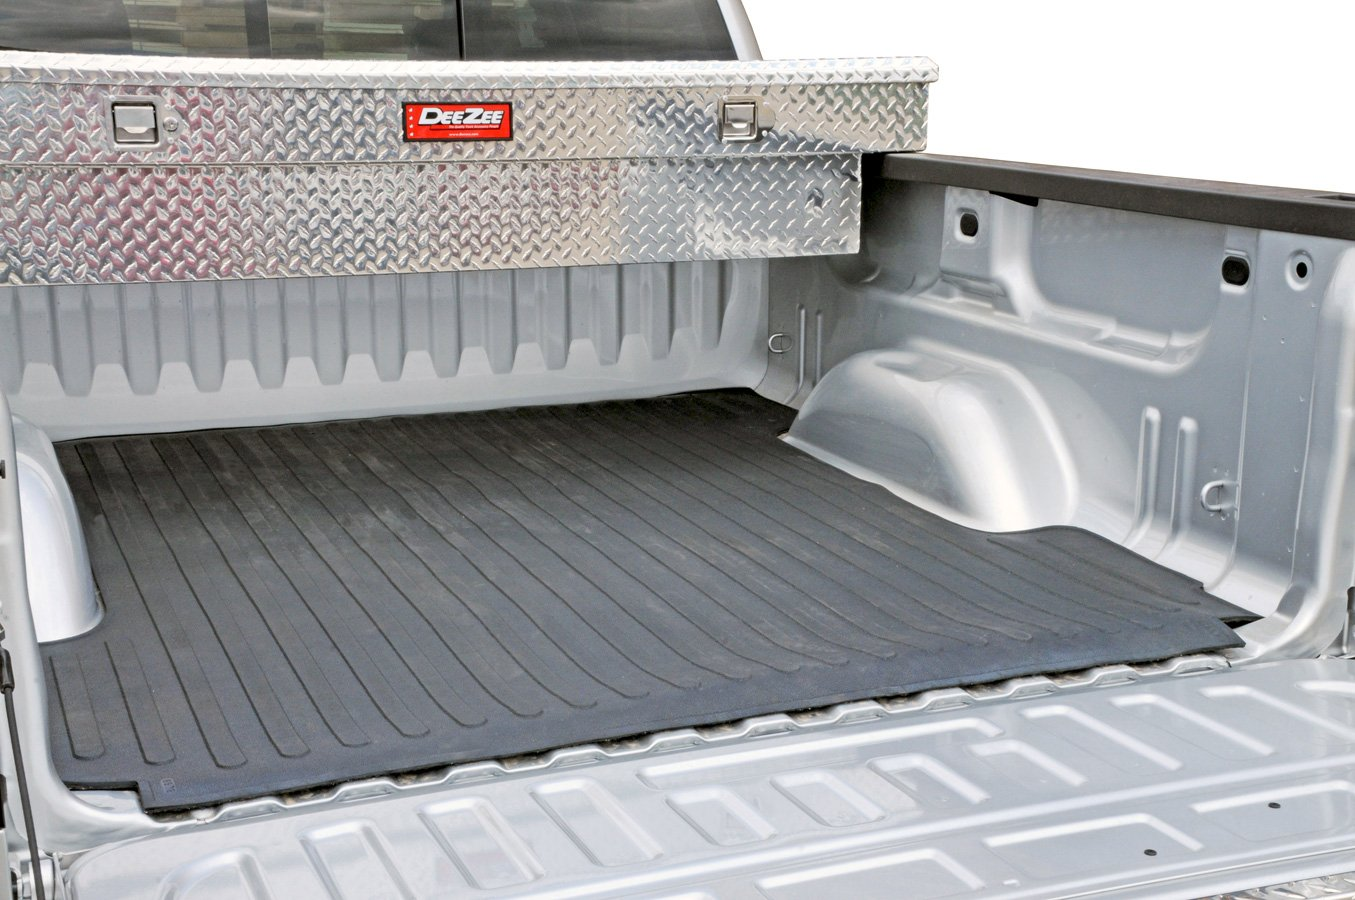 Dee Zee heavyweight Bed Mat preserves the truck cargo bed against heavy loads and cargo with sharp edges.